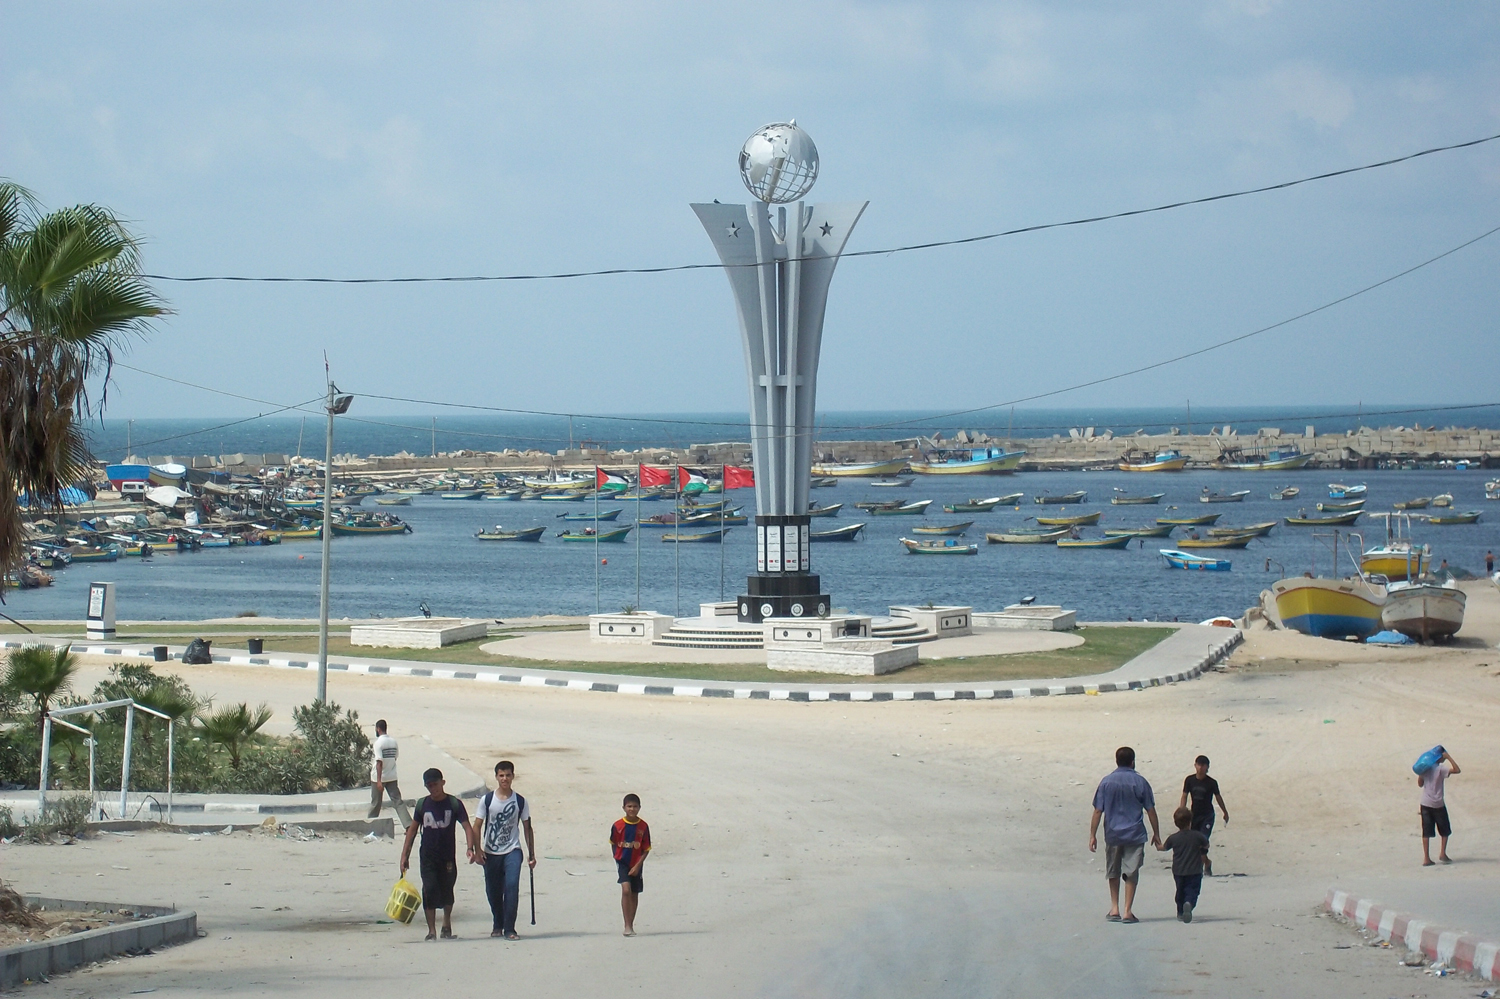 The Hamas-led government in Gaza put up a memorial to nine Turkish activists killed trying to break Israel's naval blockade in May 2010